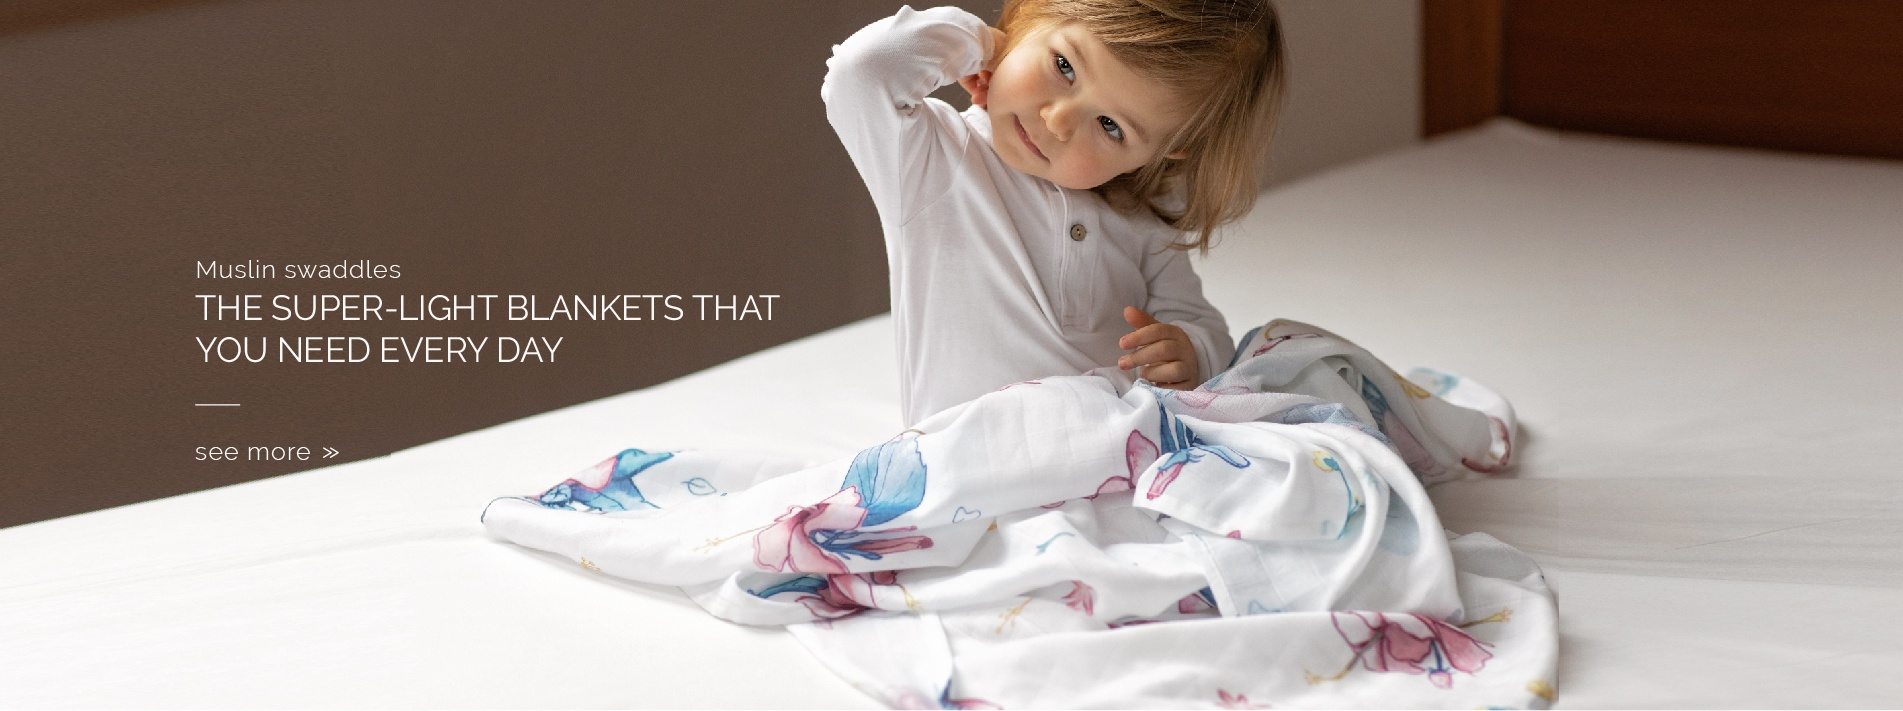 Muslin swaddles - The super-light blankets that you need every day